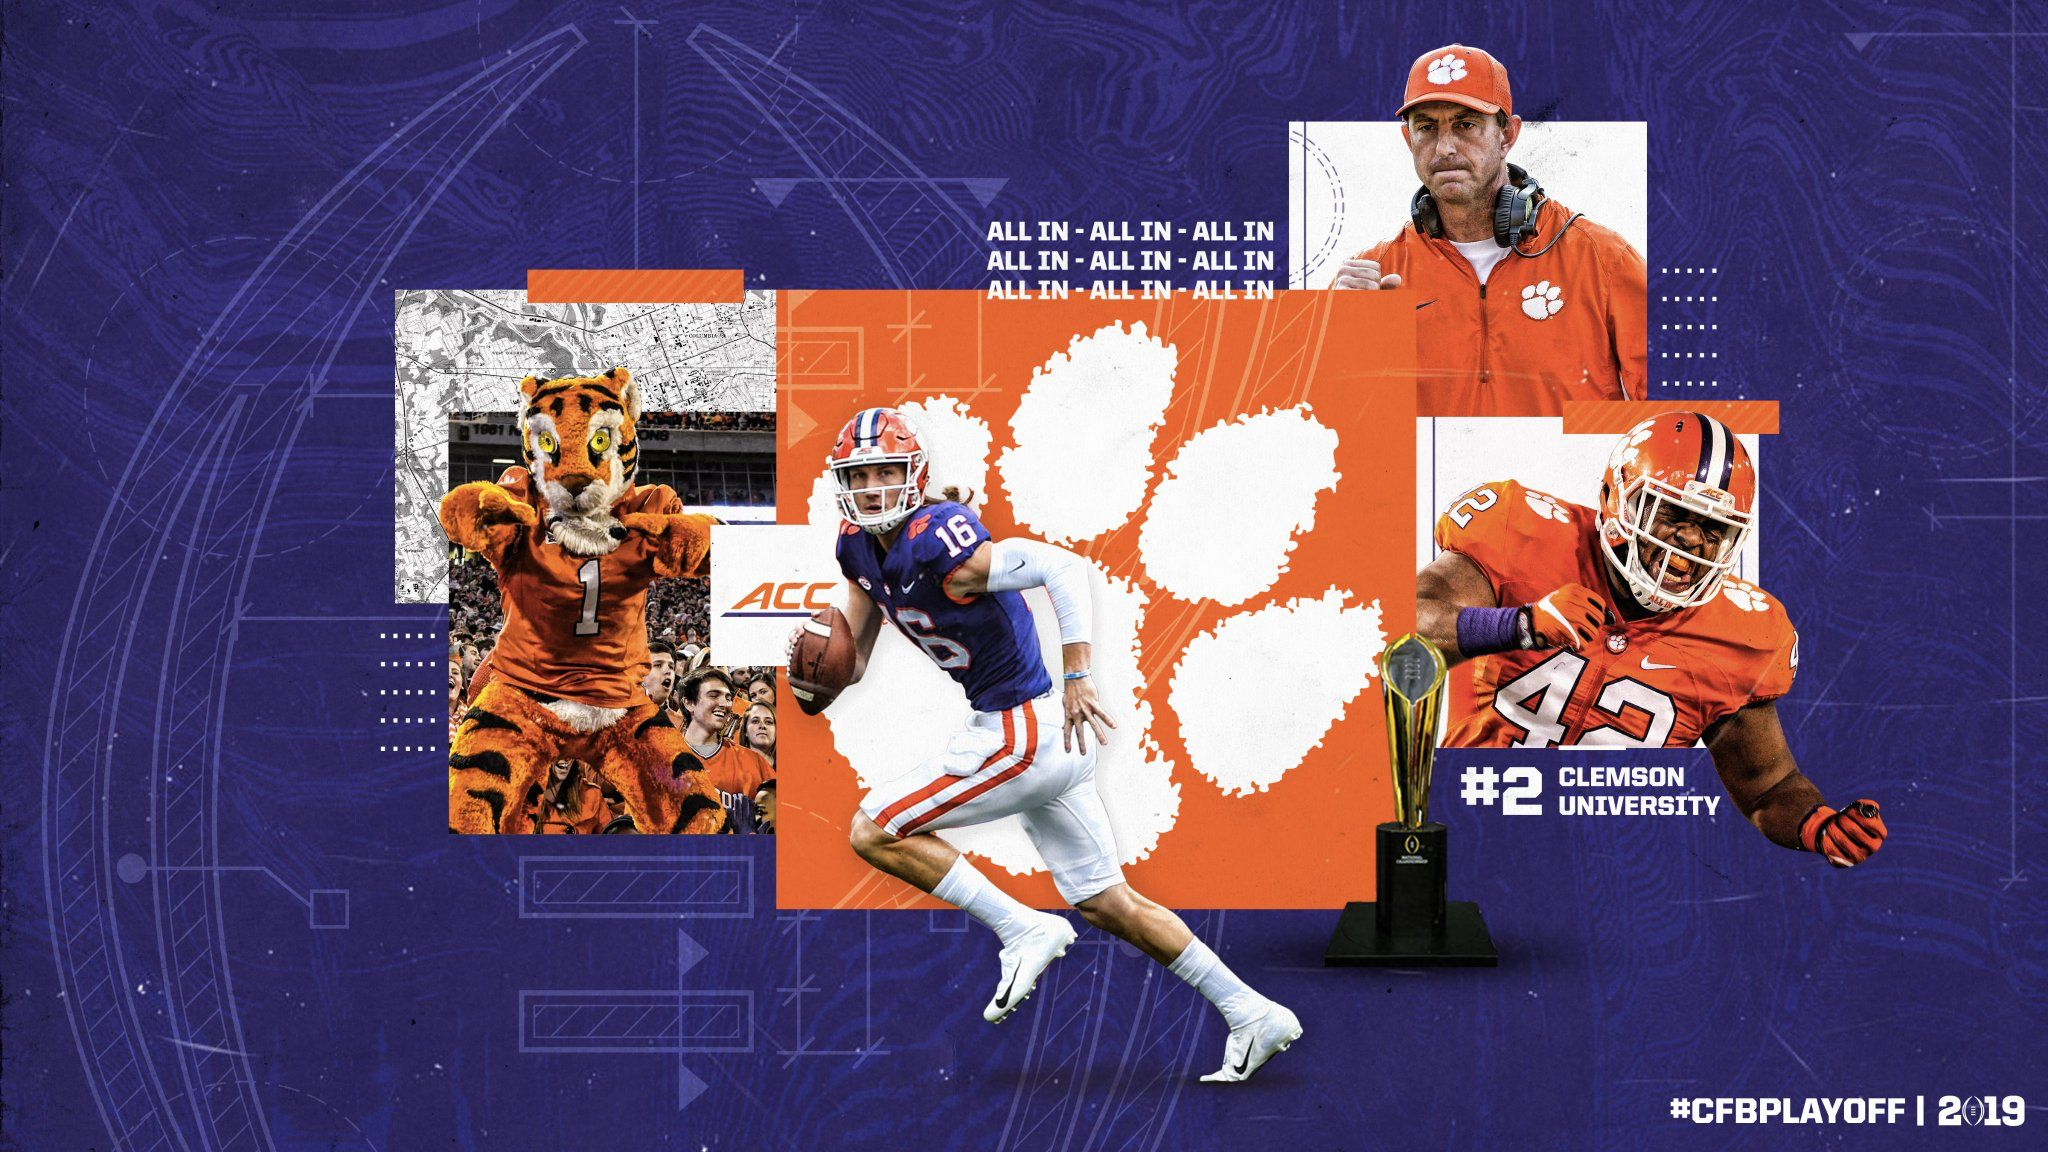 Pin by Peter Farkas on graphics Sports design, Clemson